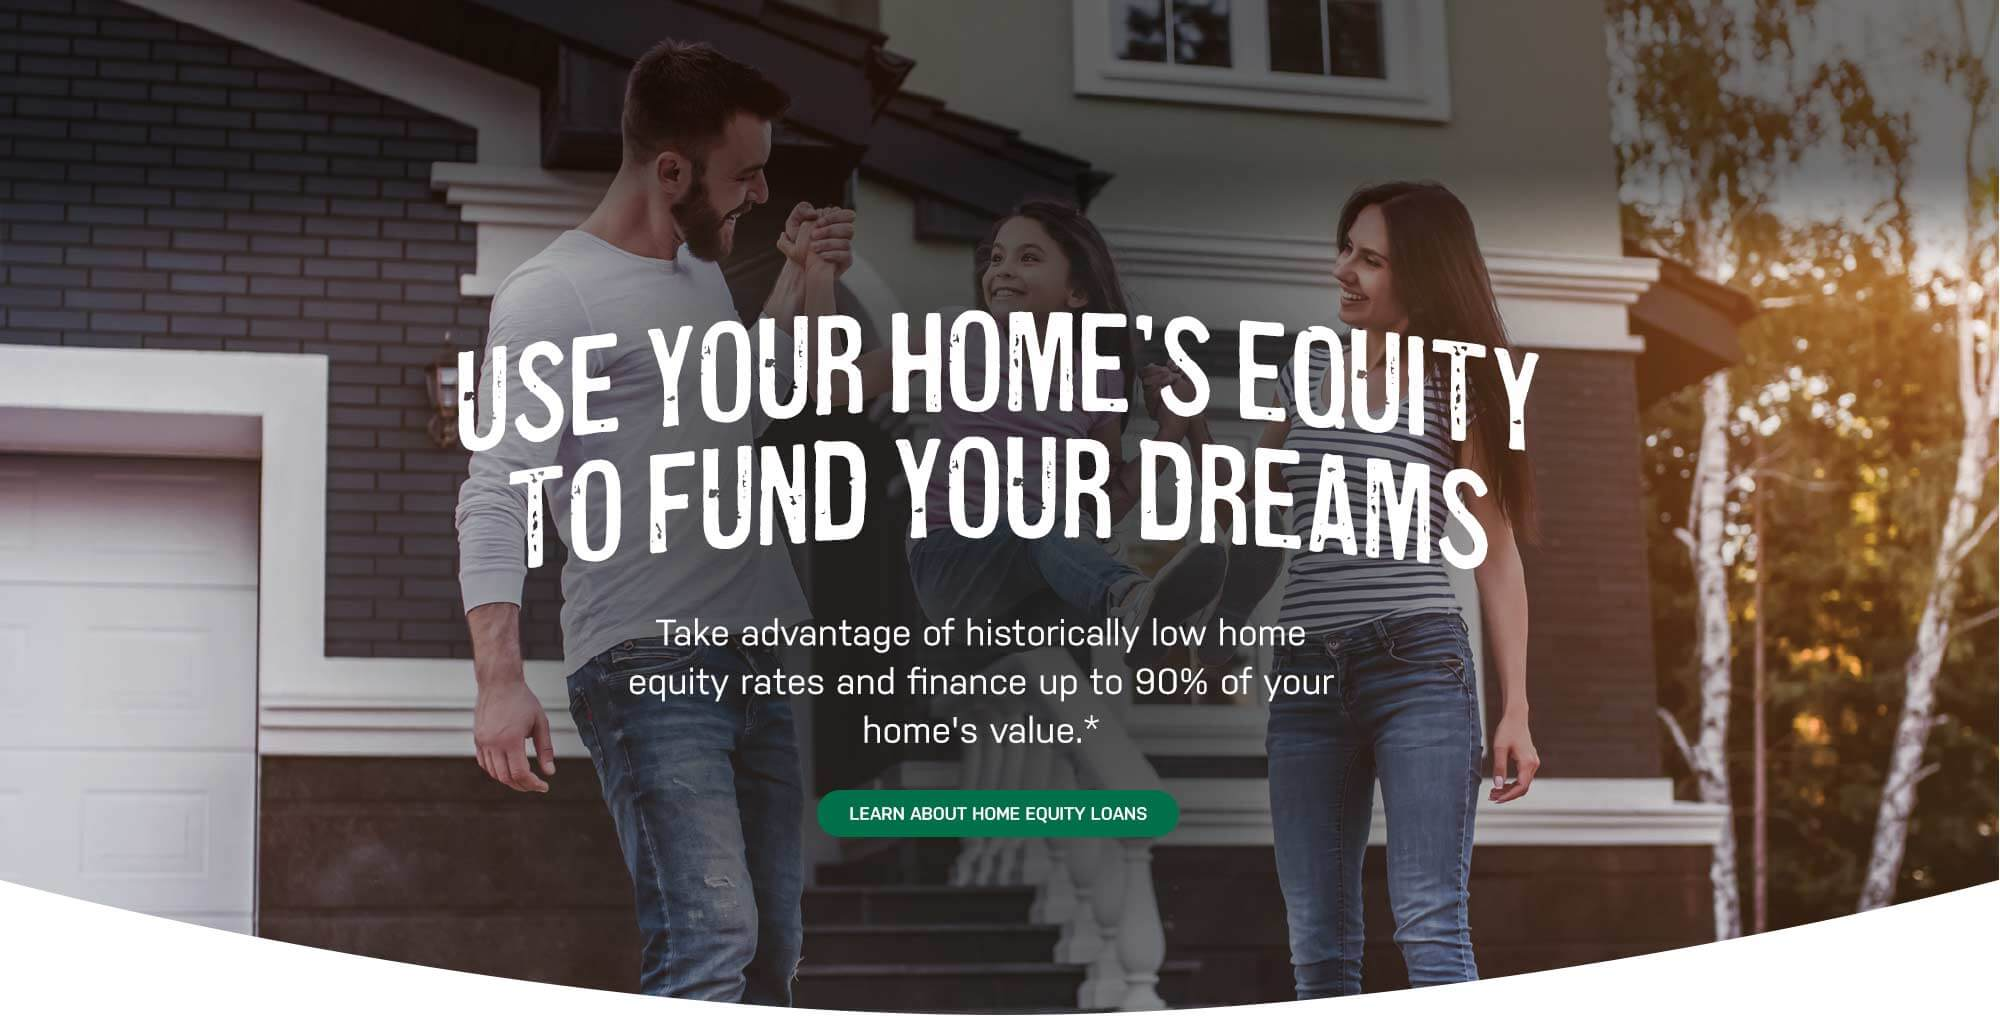 Use your home's equity to fund your dreams Take advantage of historically low home equity rates and finance up to 90% of your home's value*. Learn about home equity loans